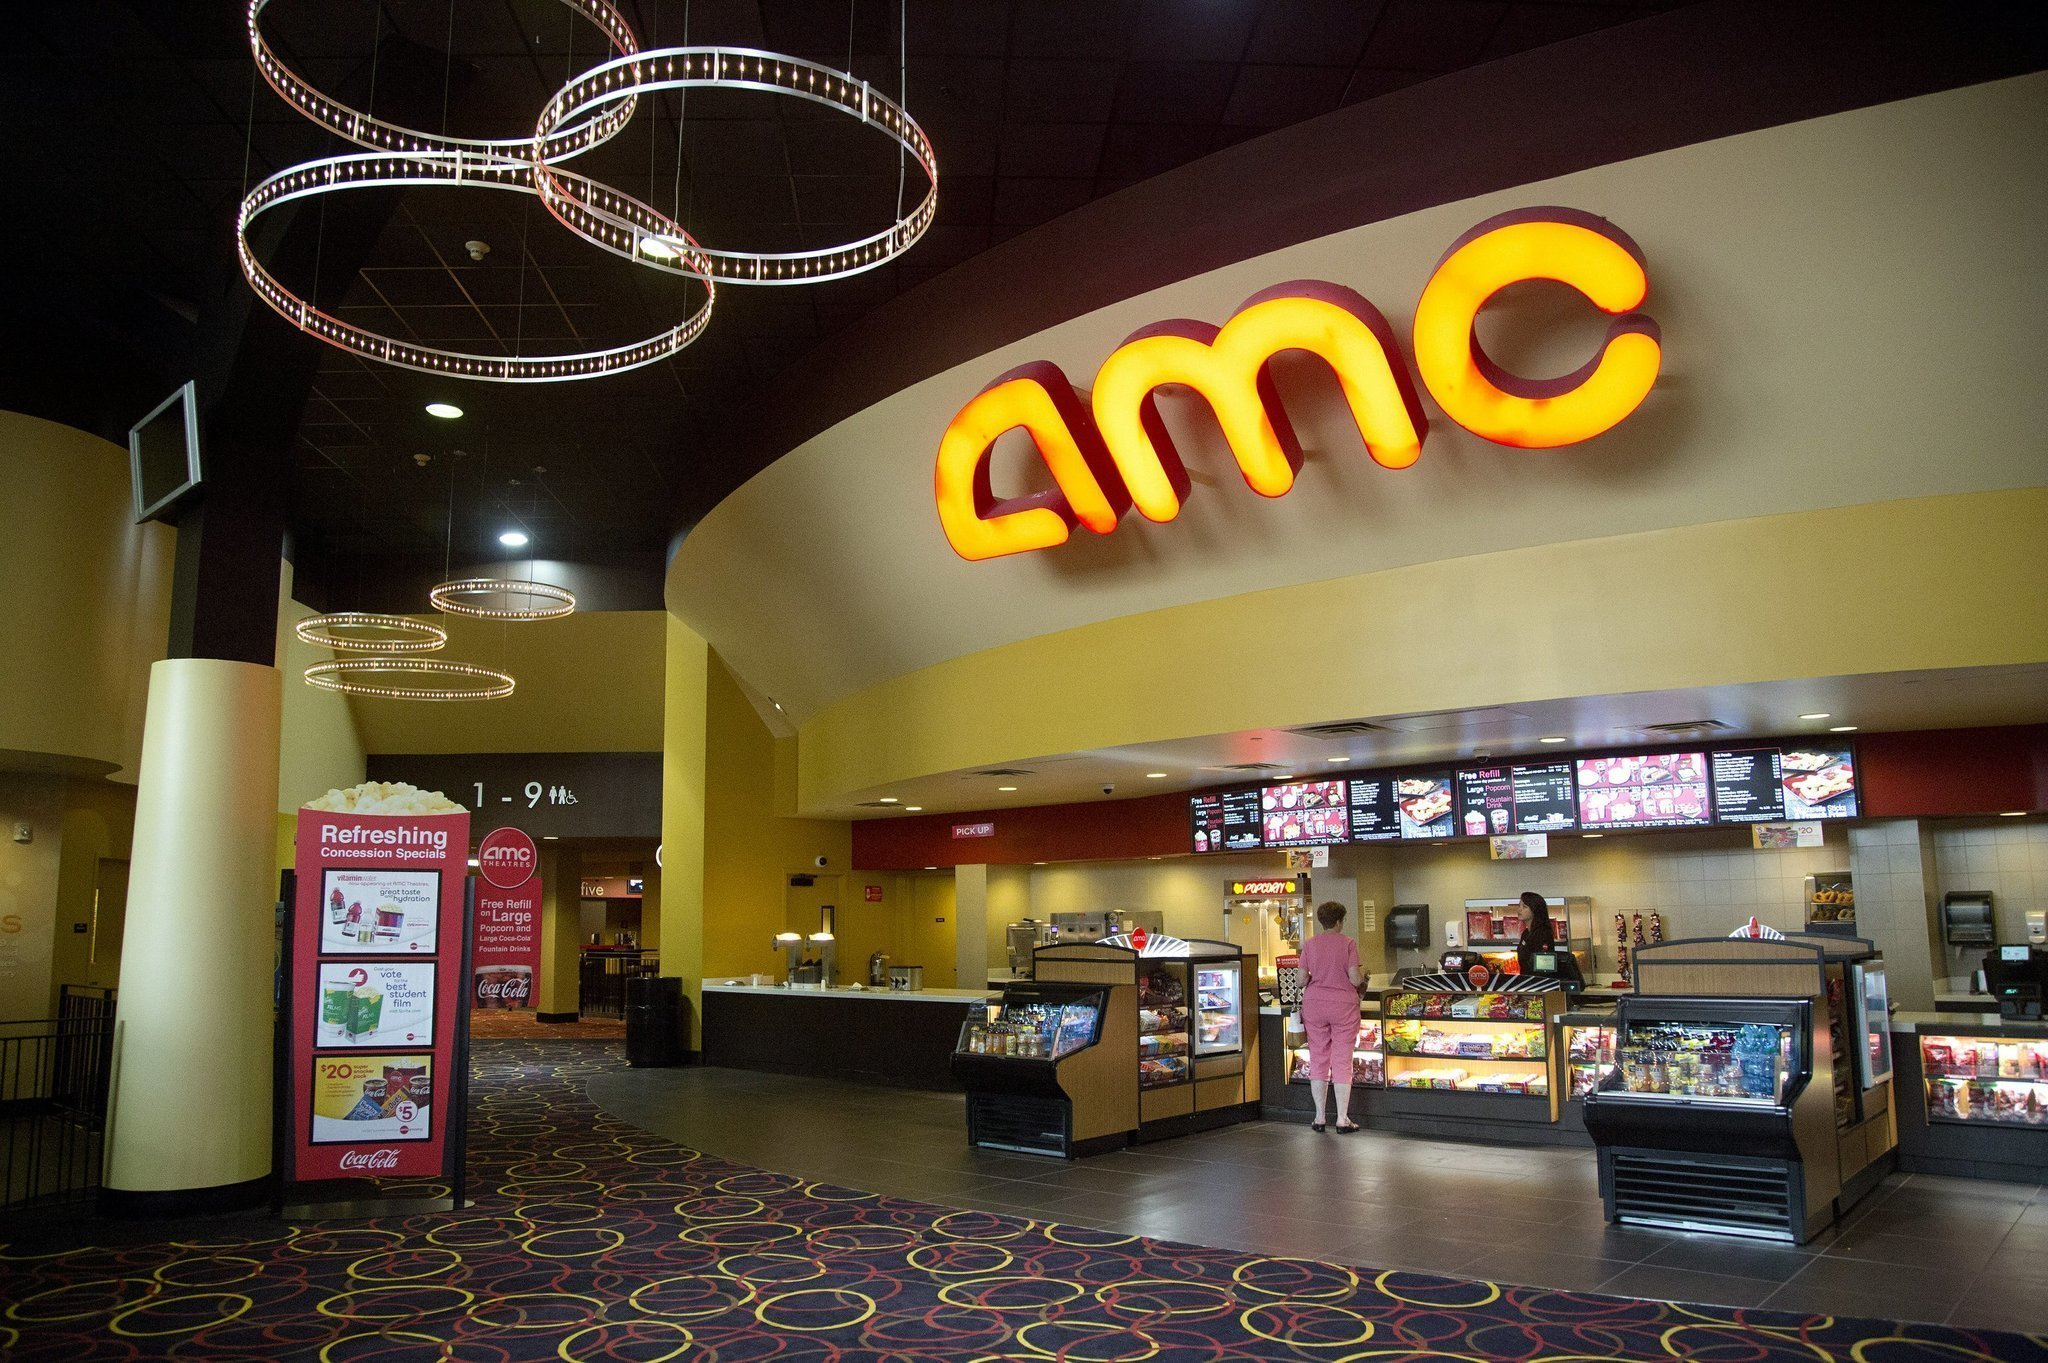 The innovative movie ticketing app and website, Atom simplifies and streamlines your moviegoing experience. Buy tickets, pre-order concessions, invite friends and .